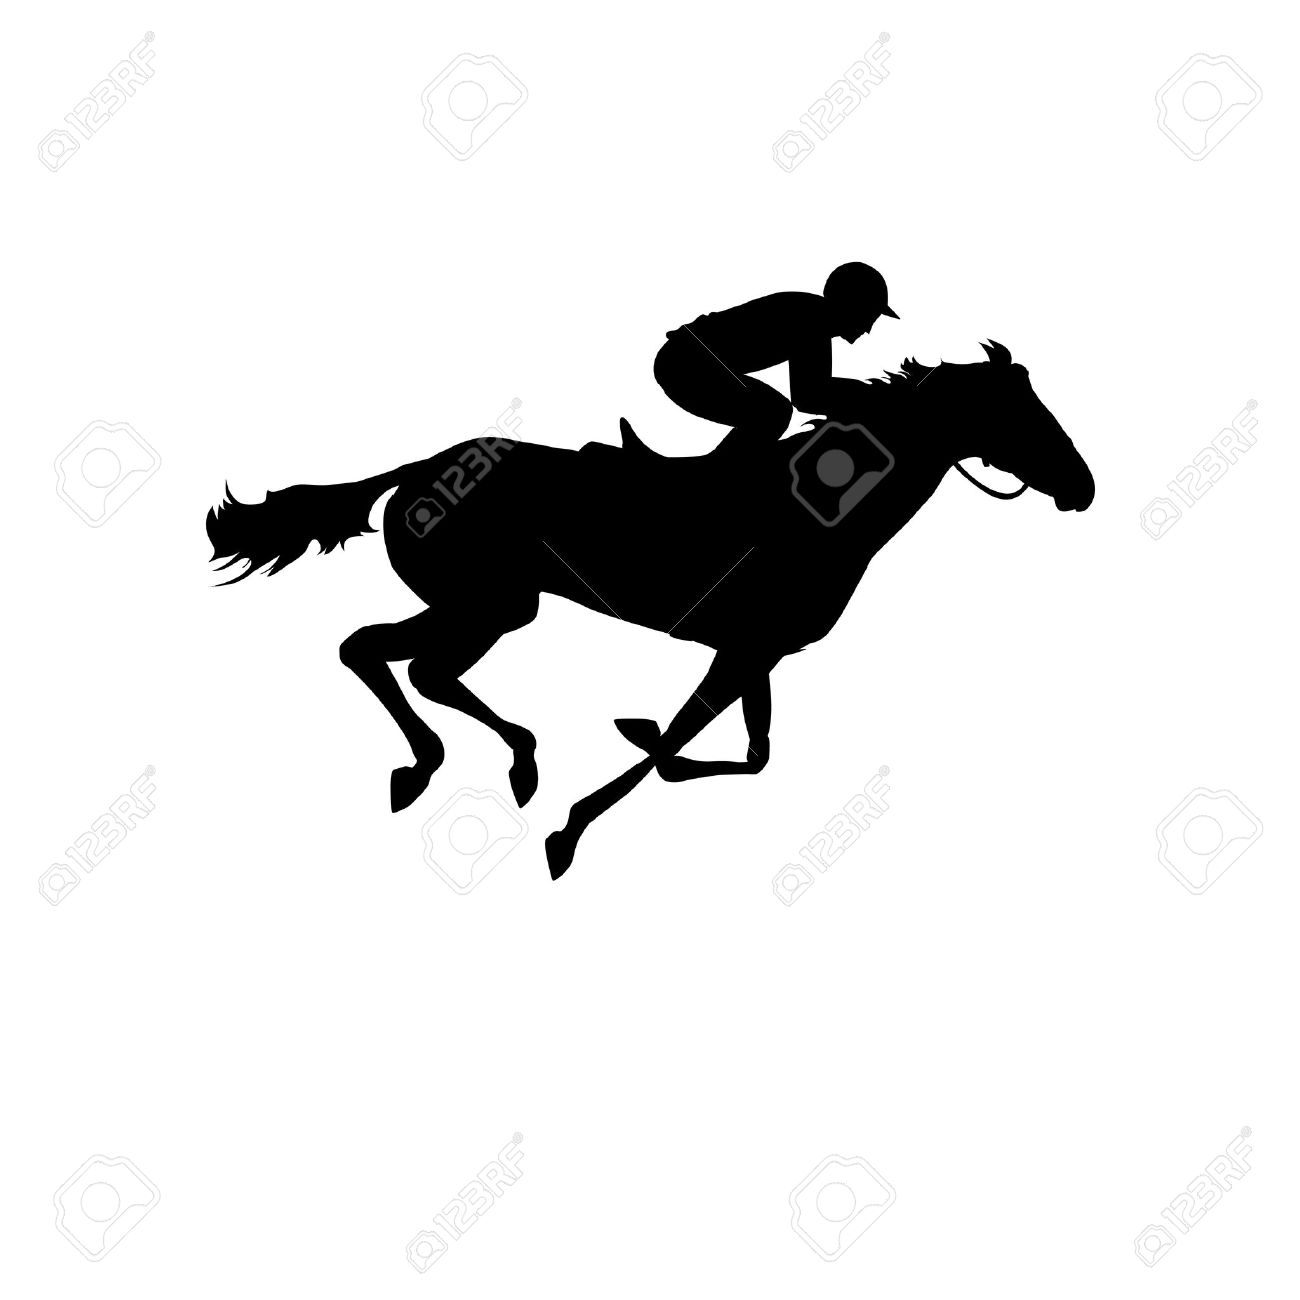 Horse Race Silhouette Of Racing Horse With Jockey On Isolated Royalty Free Cliparts Vectors And Stock Illustration Image 40257871